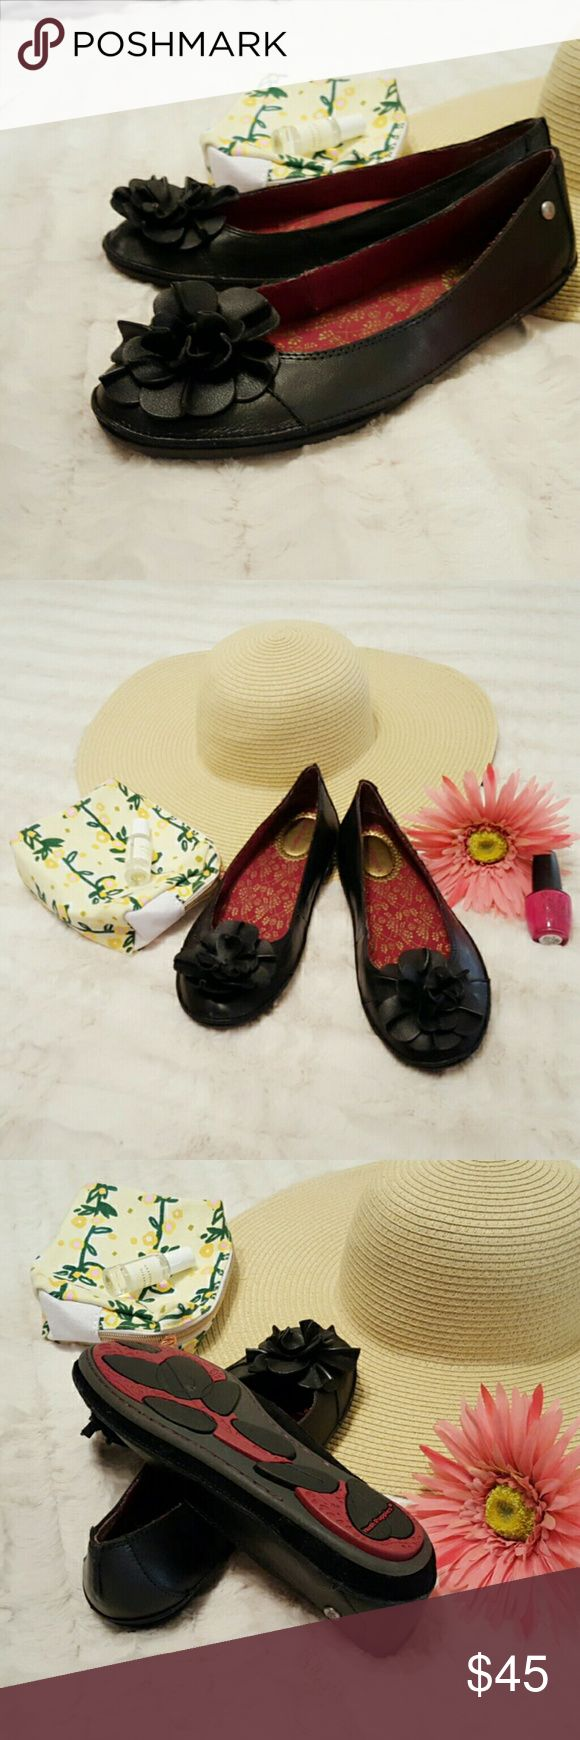 NEW Hush Puppies Leather Flats Flower detailed, leather flats. Quality and comfortable! Hush Puppies Shoes Flats & Loafers